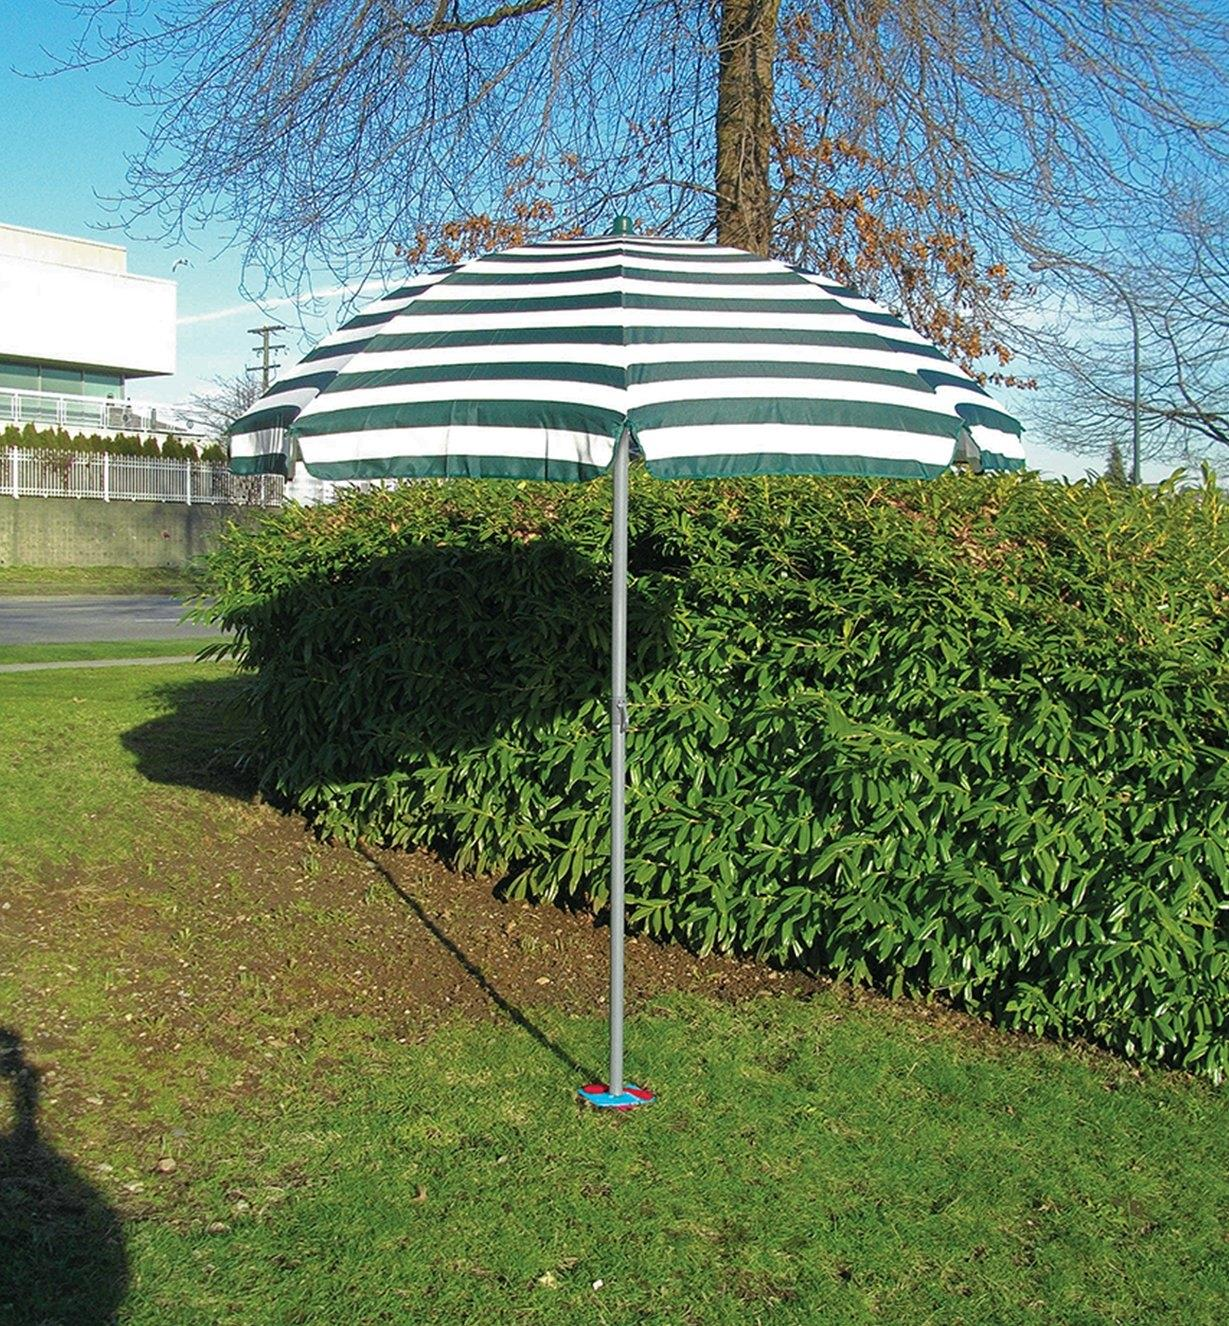 Ground screw installed in the ground, holding up an umbrella